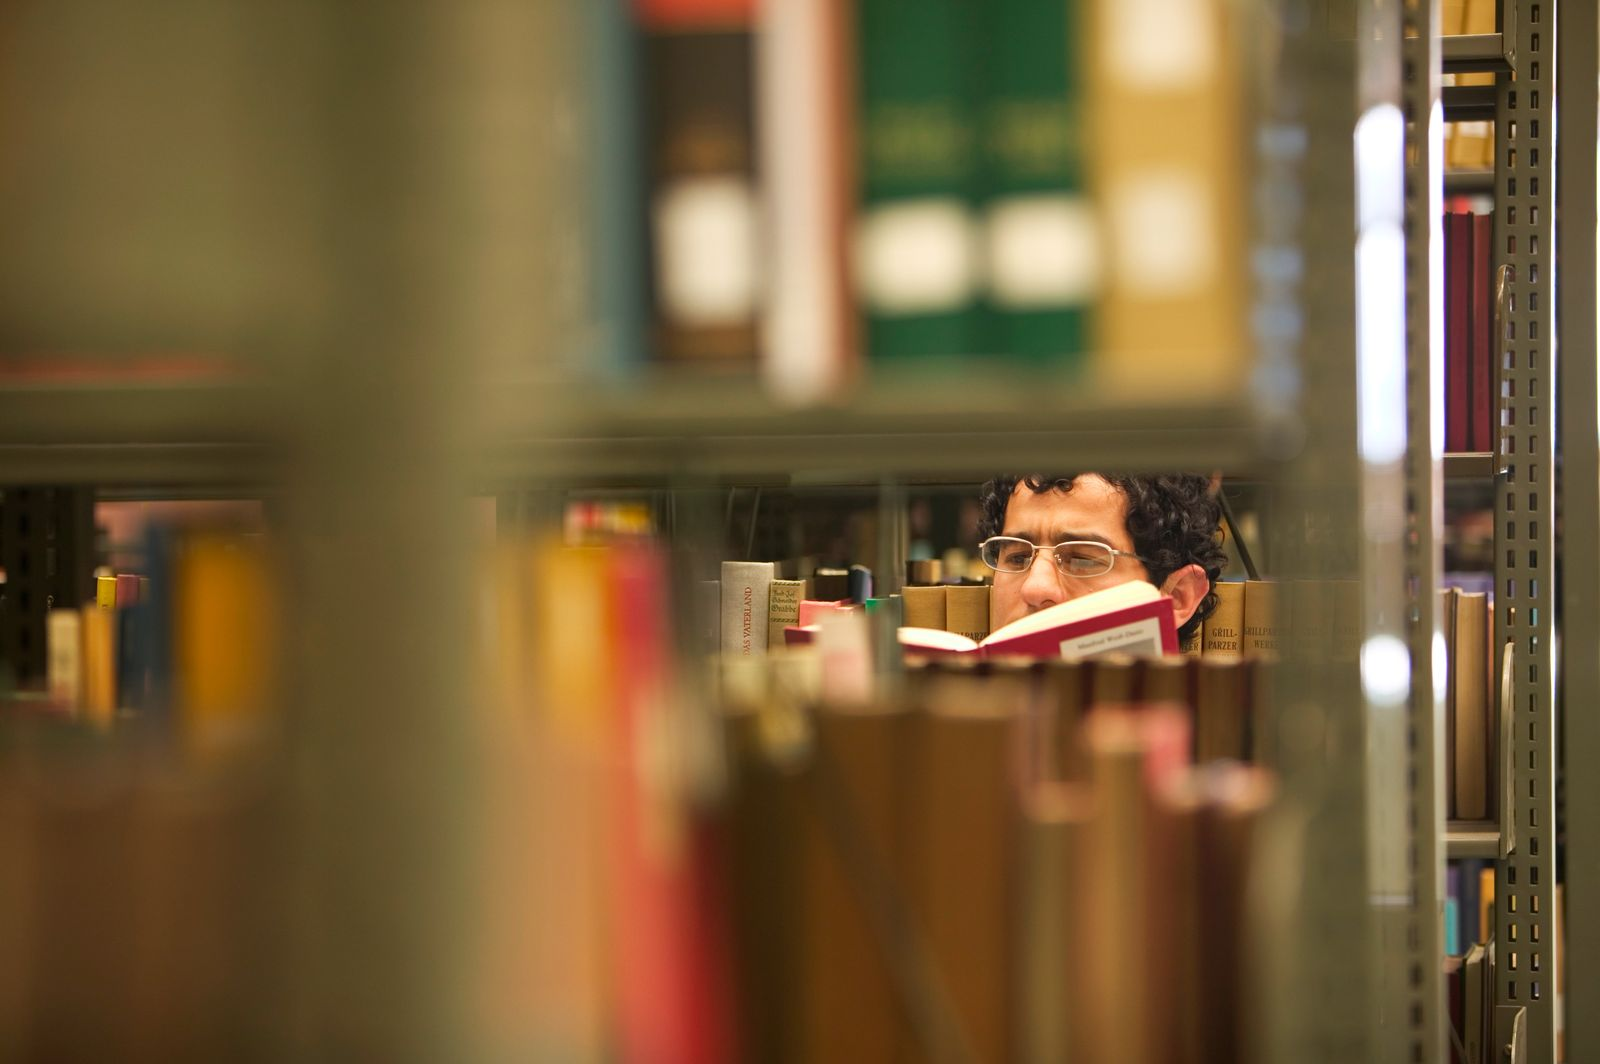 Man Behind Library Bookcases